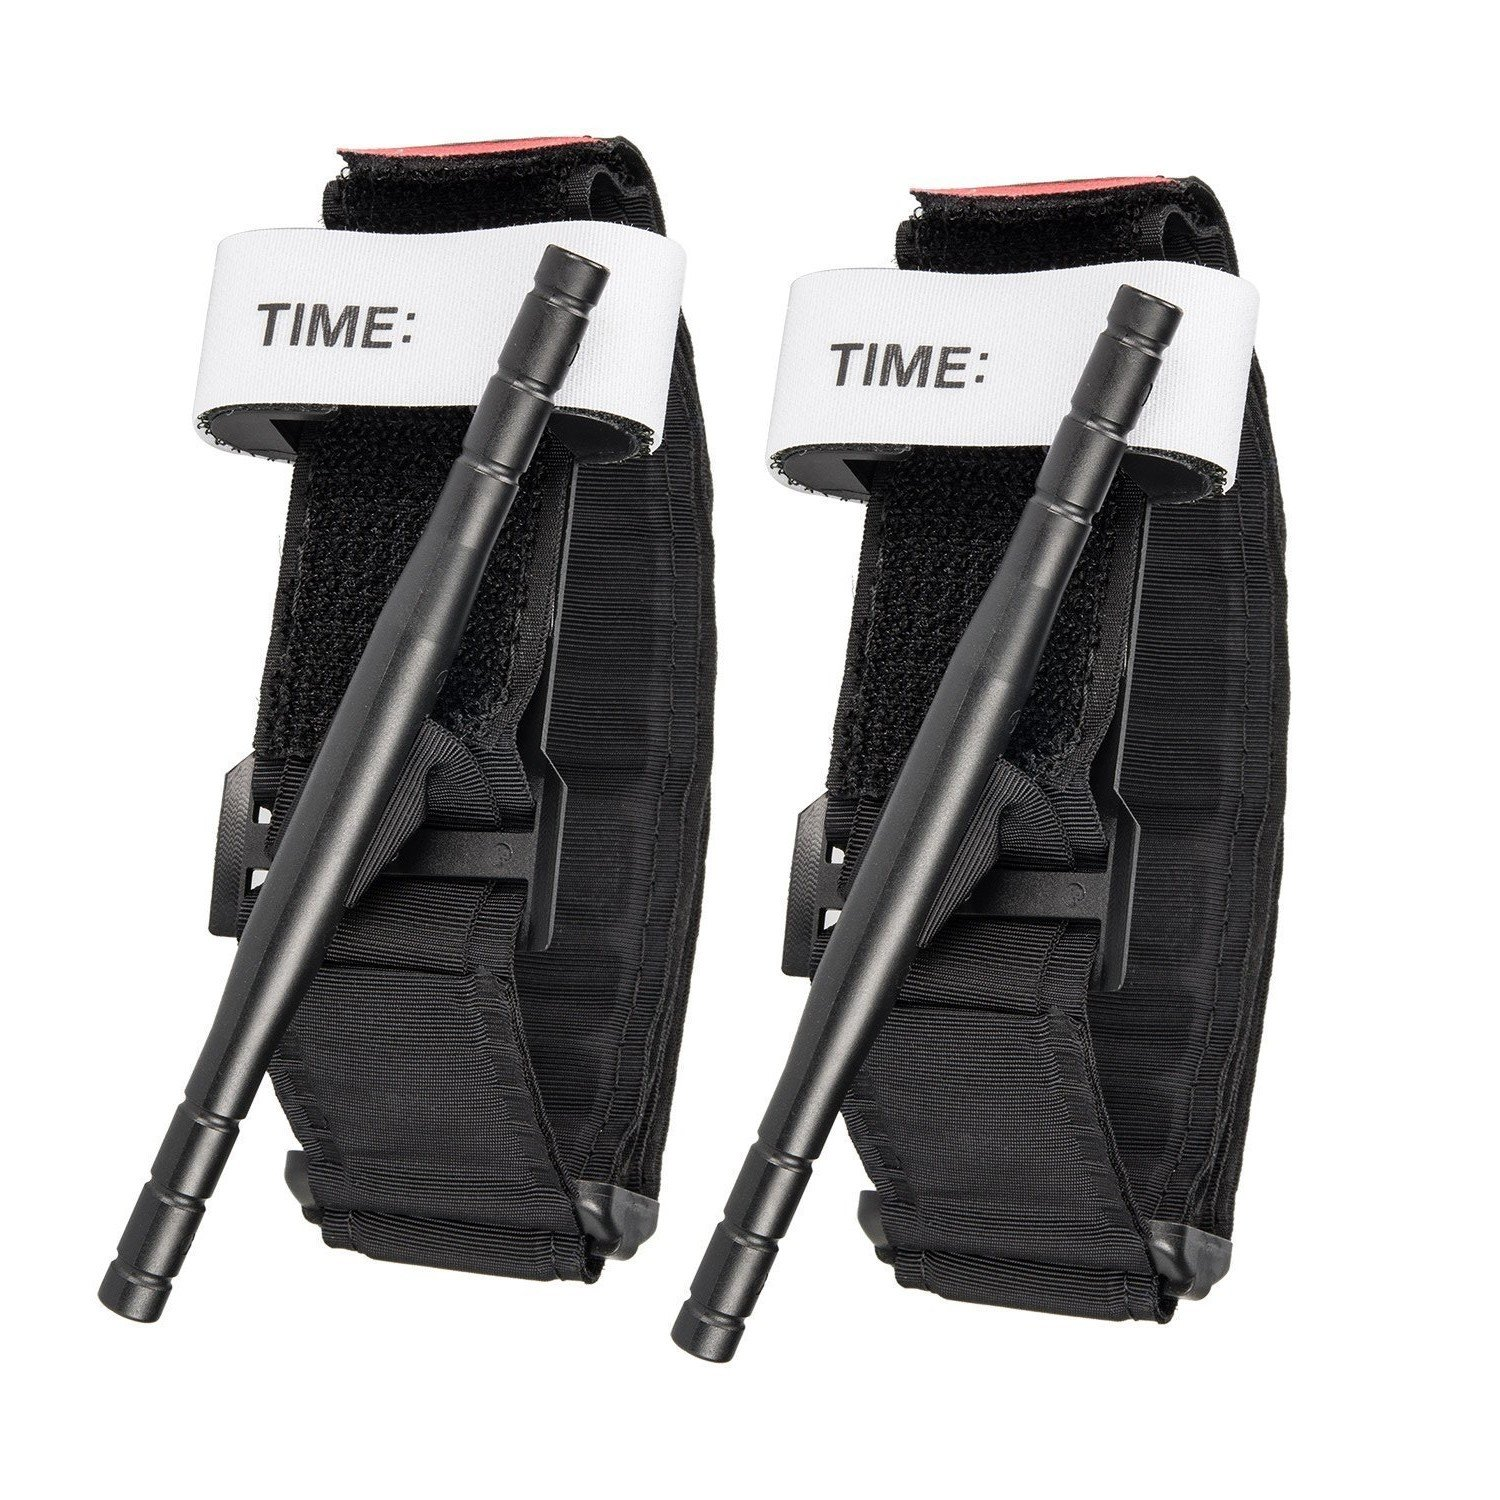 Tourniquets - Combat Military Medical Emergency Hiking Application, First Aid Medical Supplies, Rapid One Hand Application l Features Windlass & Time Stamp (2 Pack)